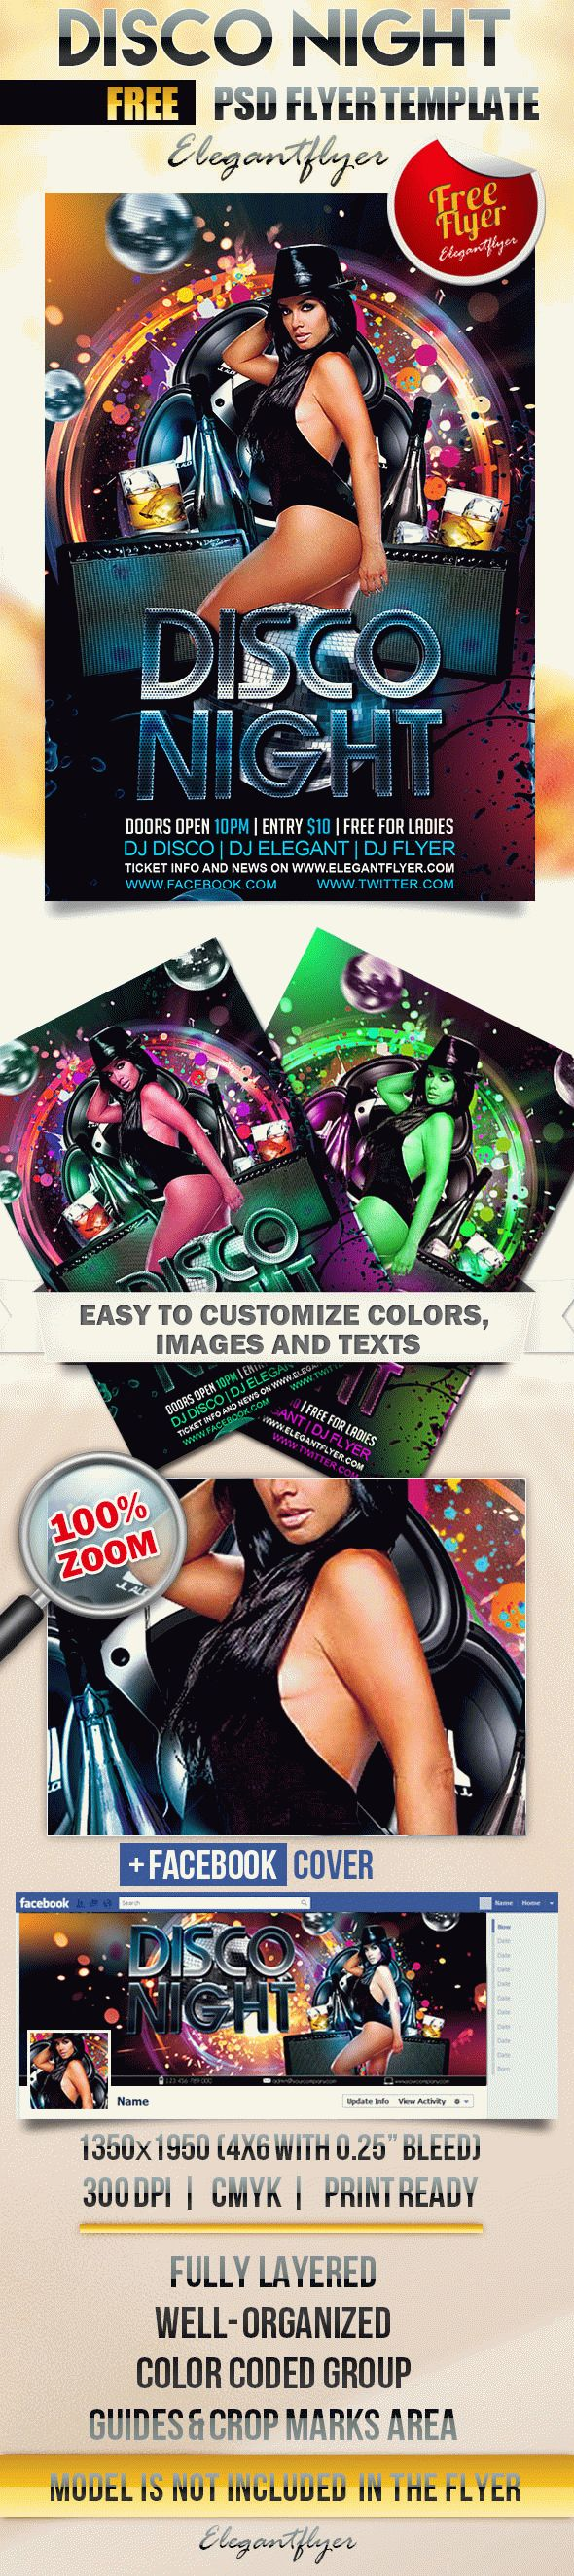 Disco Night – Free Flyer PSD Template